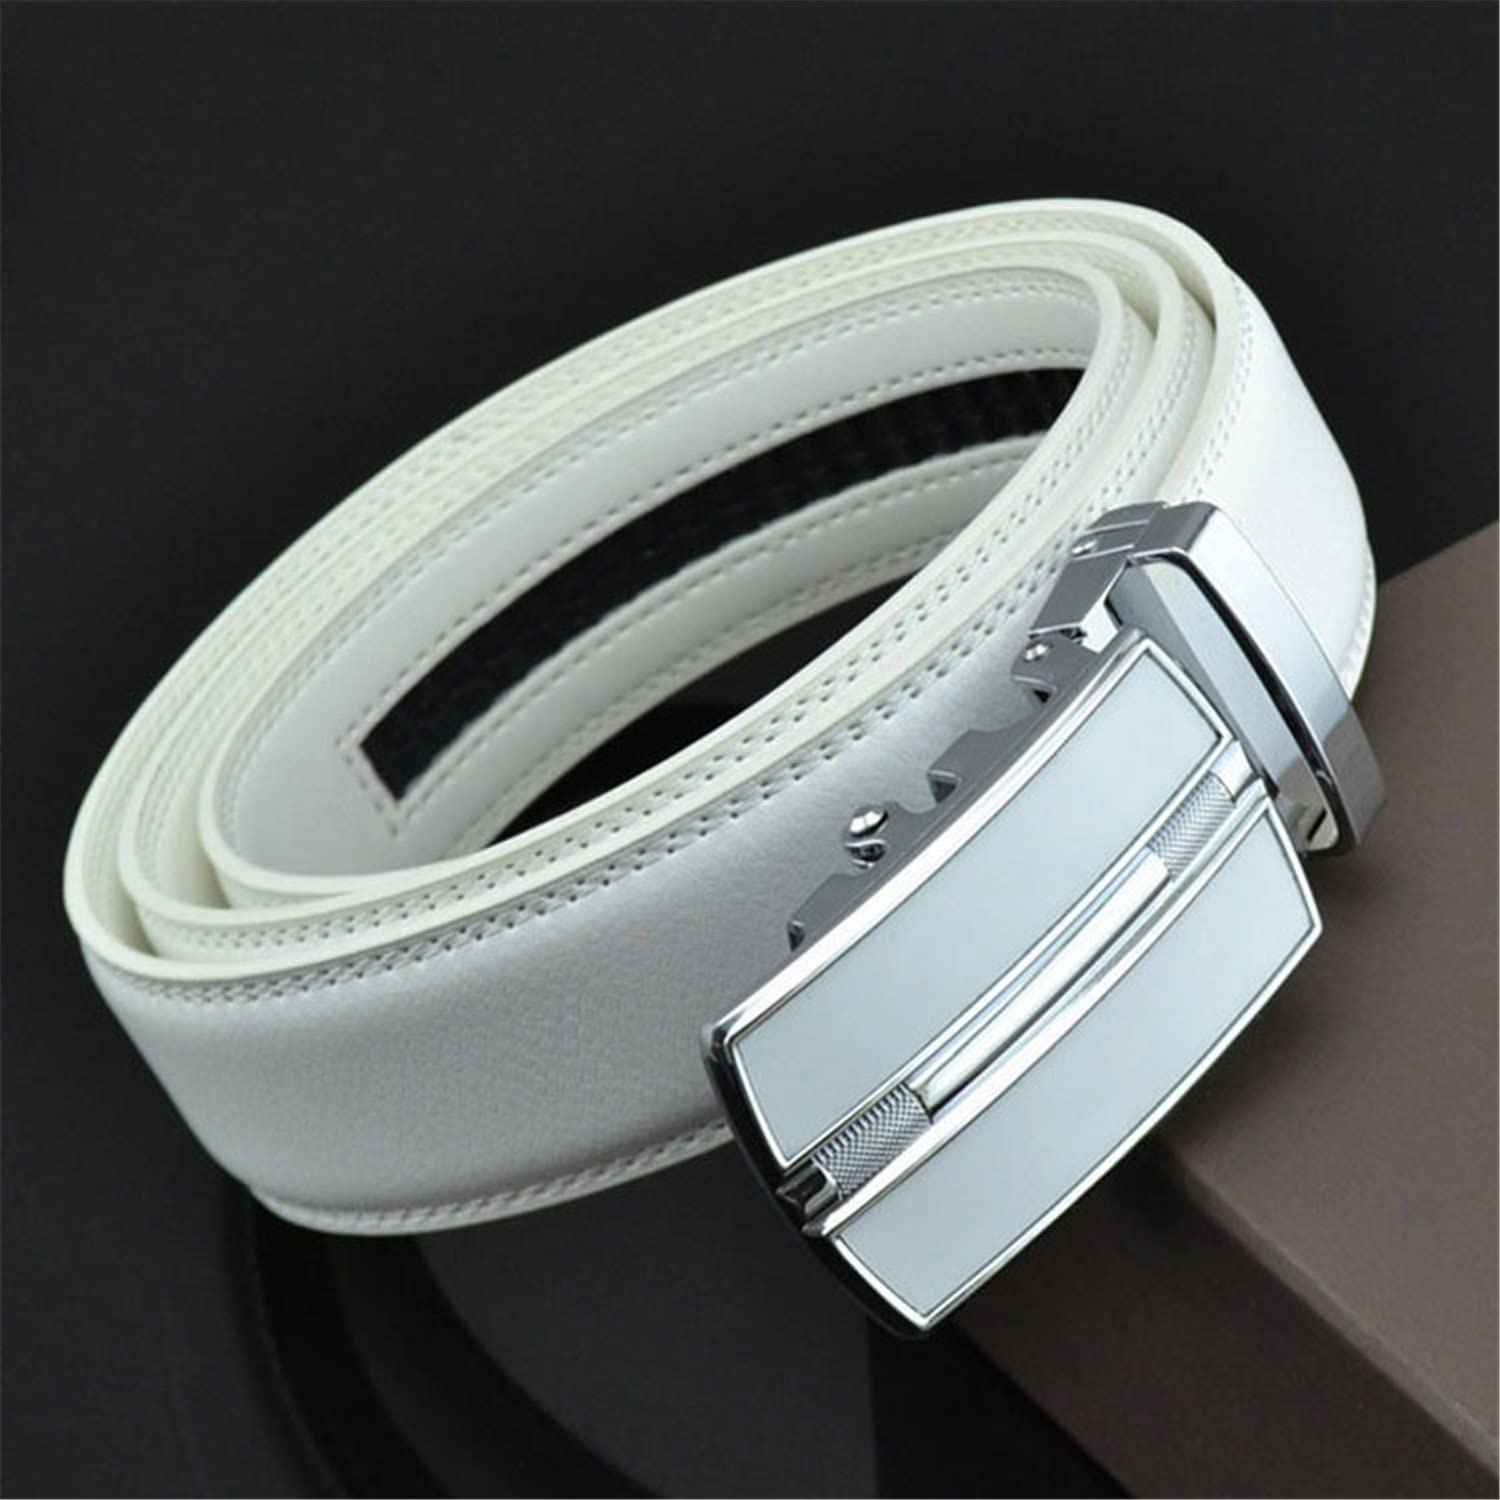 Eric Hug?Fashion?Belt Designer Belts Men Fashion Geometric Metal Automatic Buckle Genuine Leather Luxury Brand Belt White